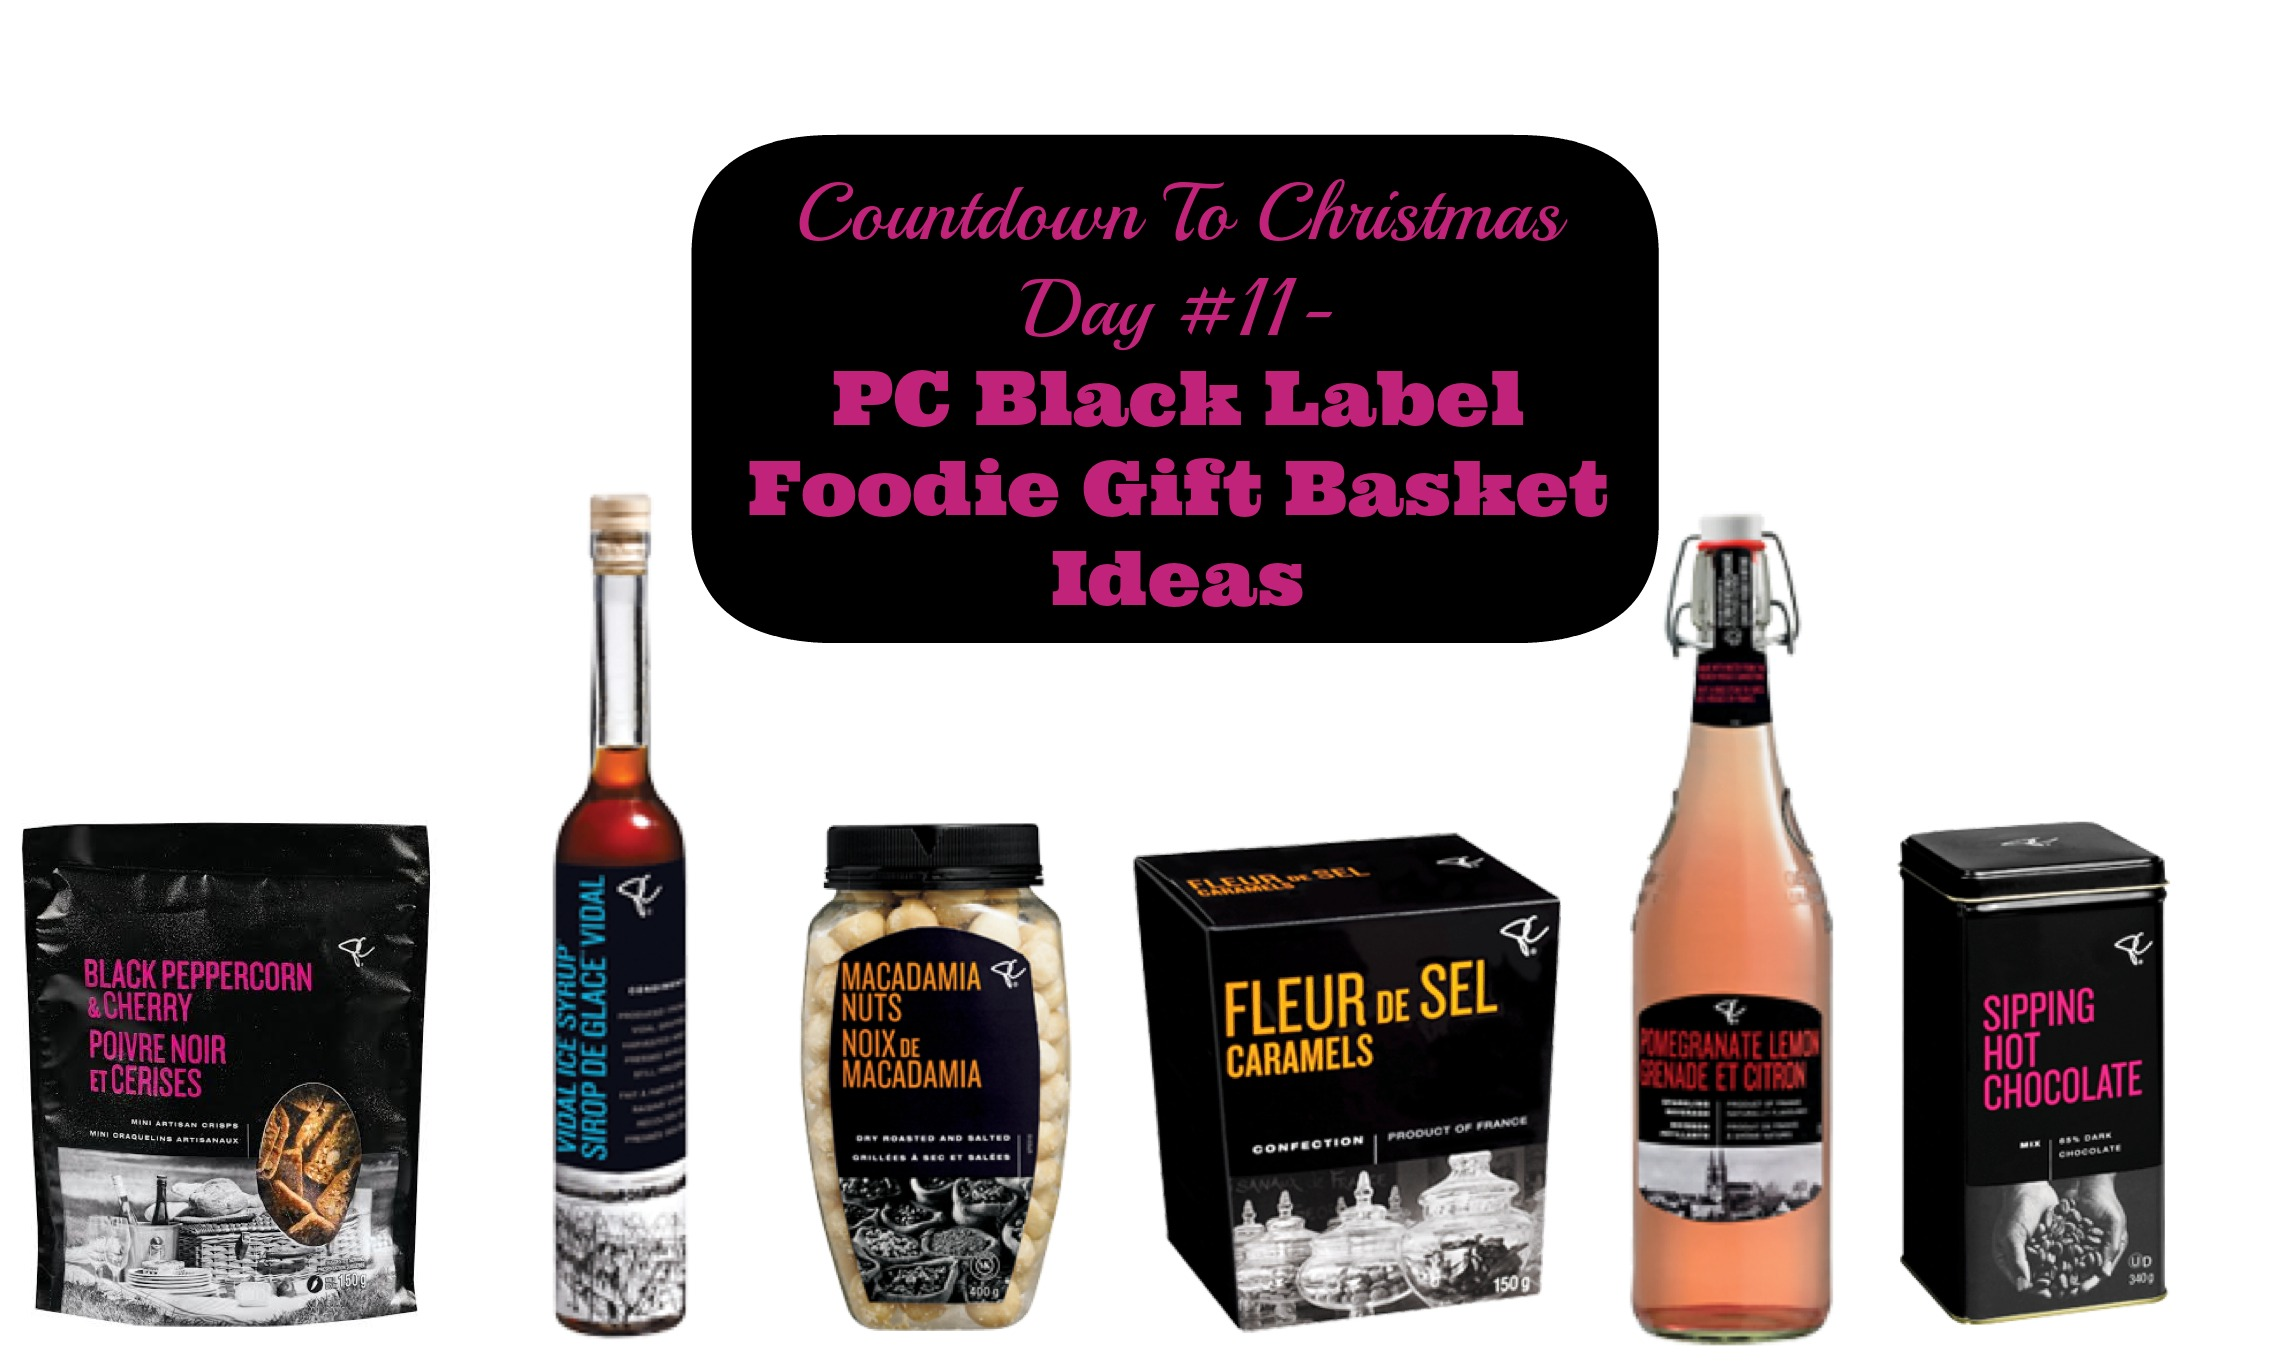 countdown to christmas day 11 great ideas for creating a foodie gift basket